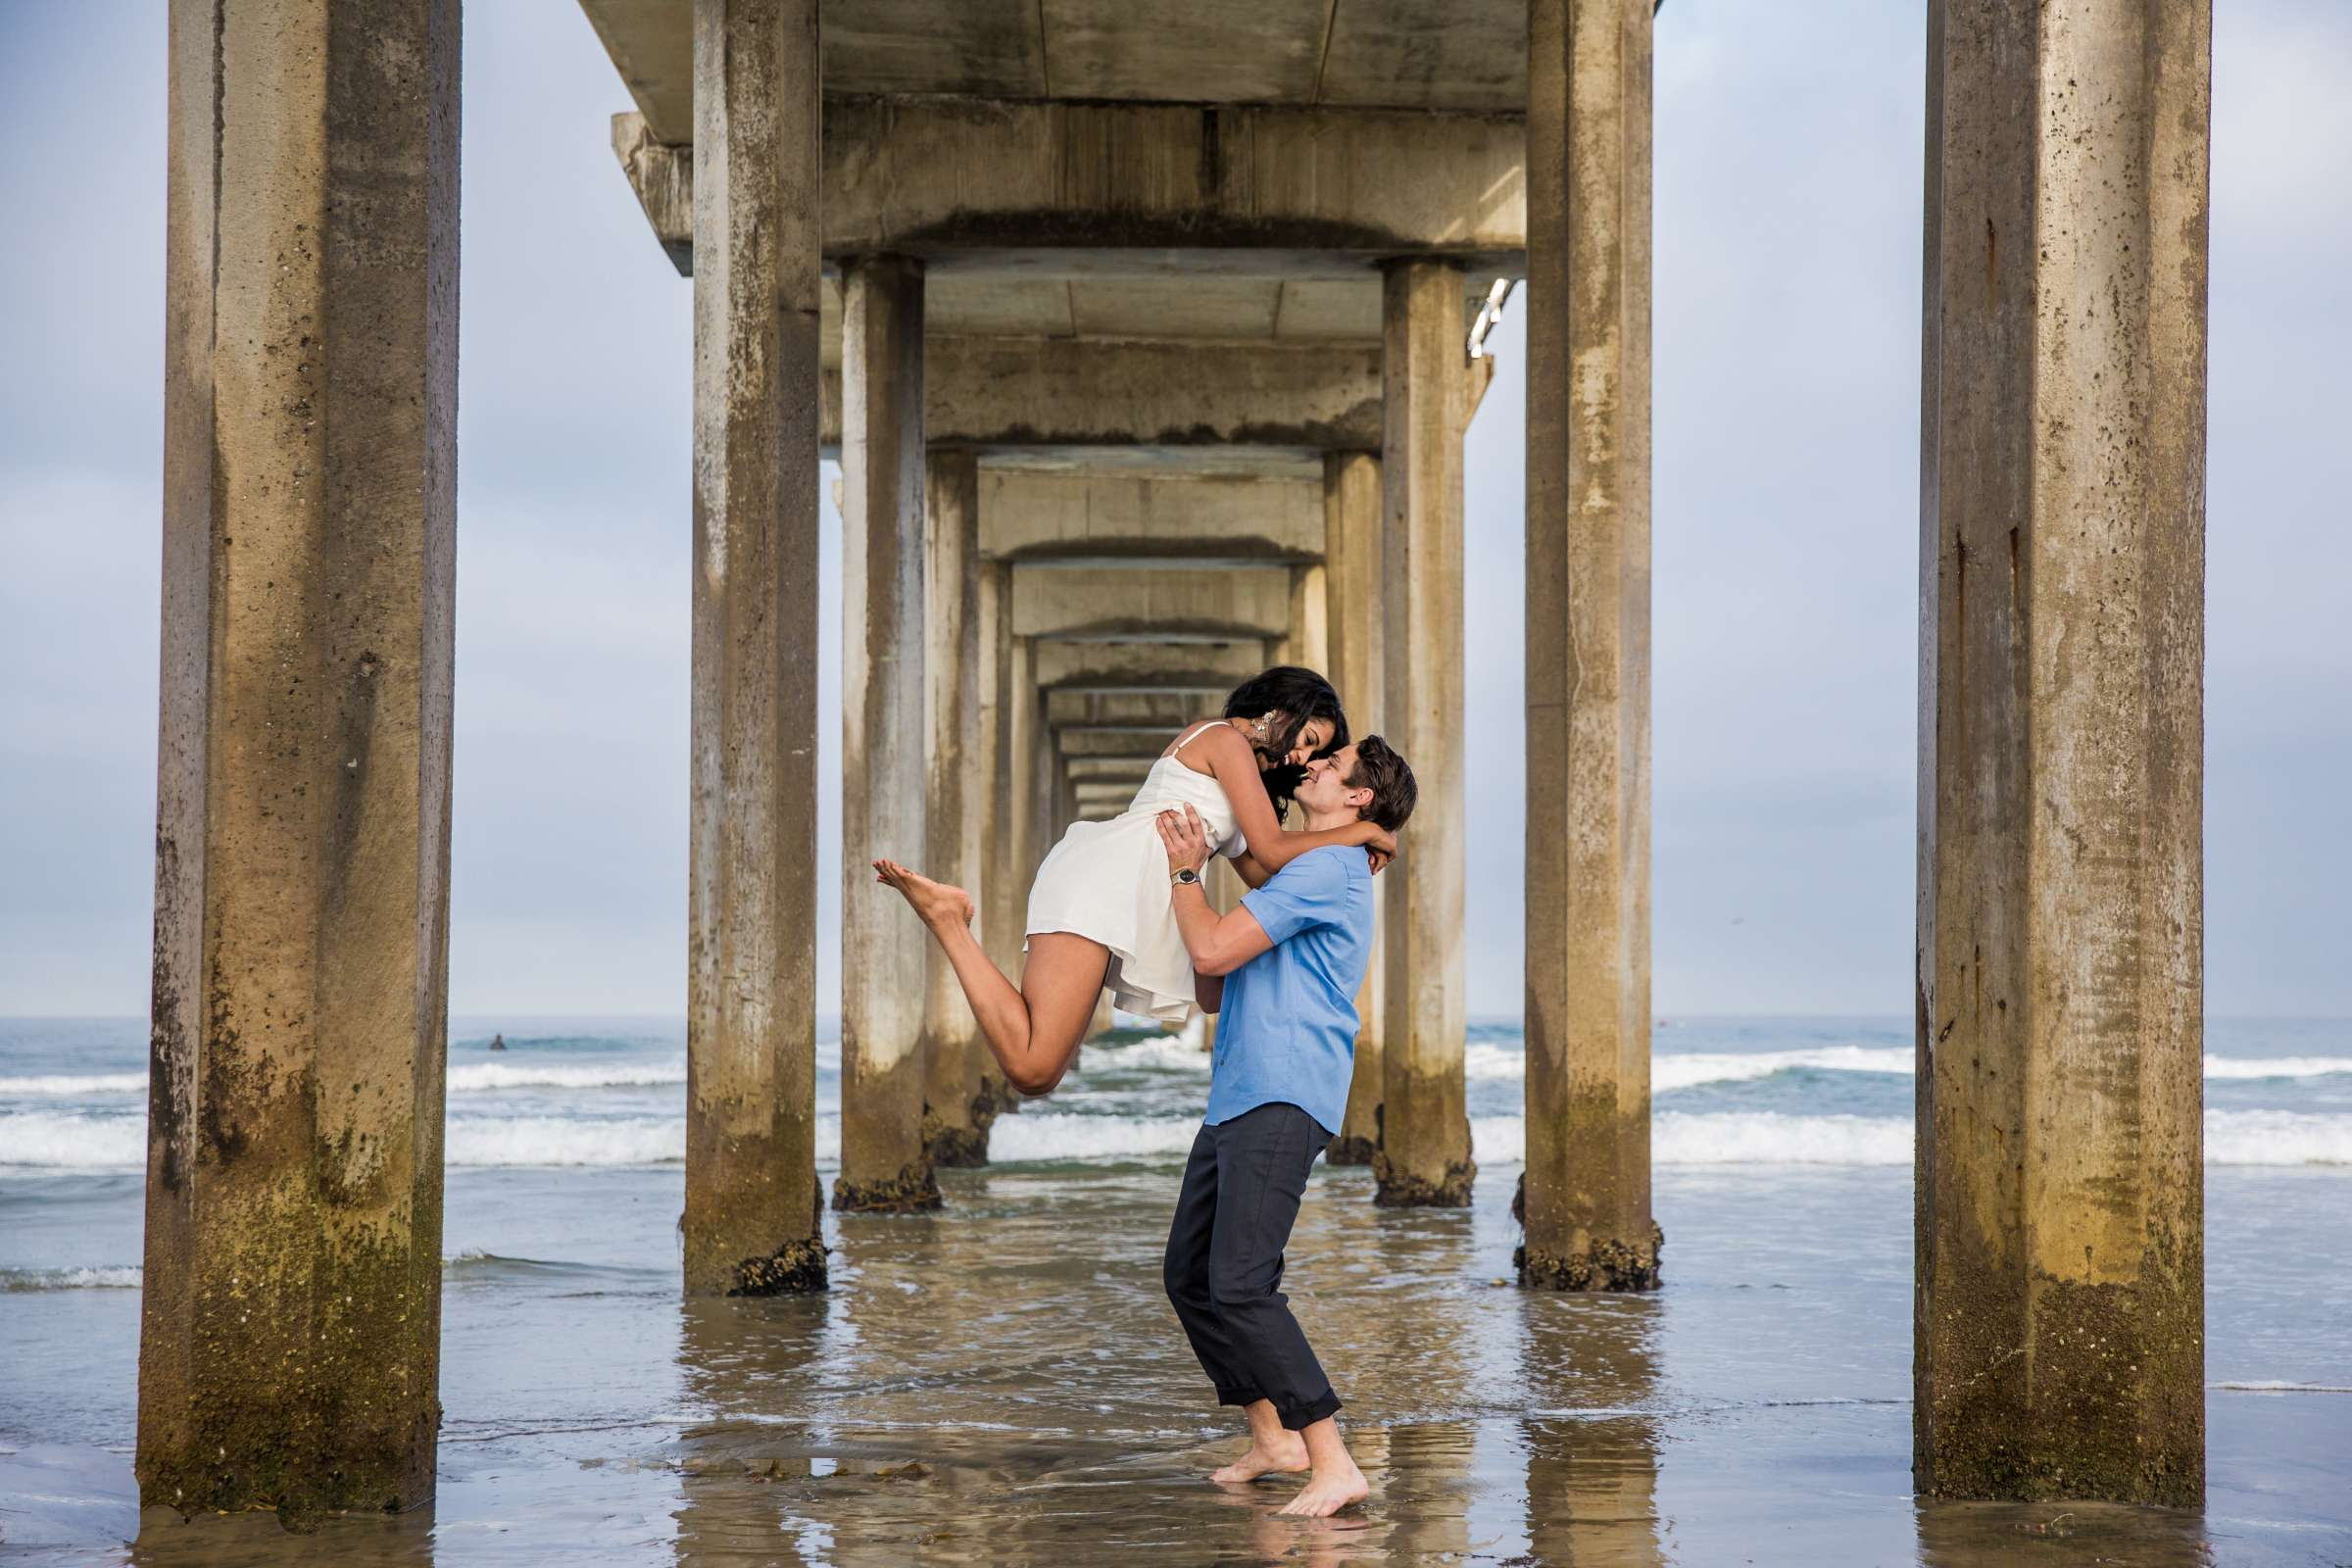 Grand Tradition Estate Engagement, Nikita and Jaycob Engagement Photo #1 by True Photography